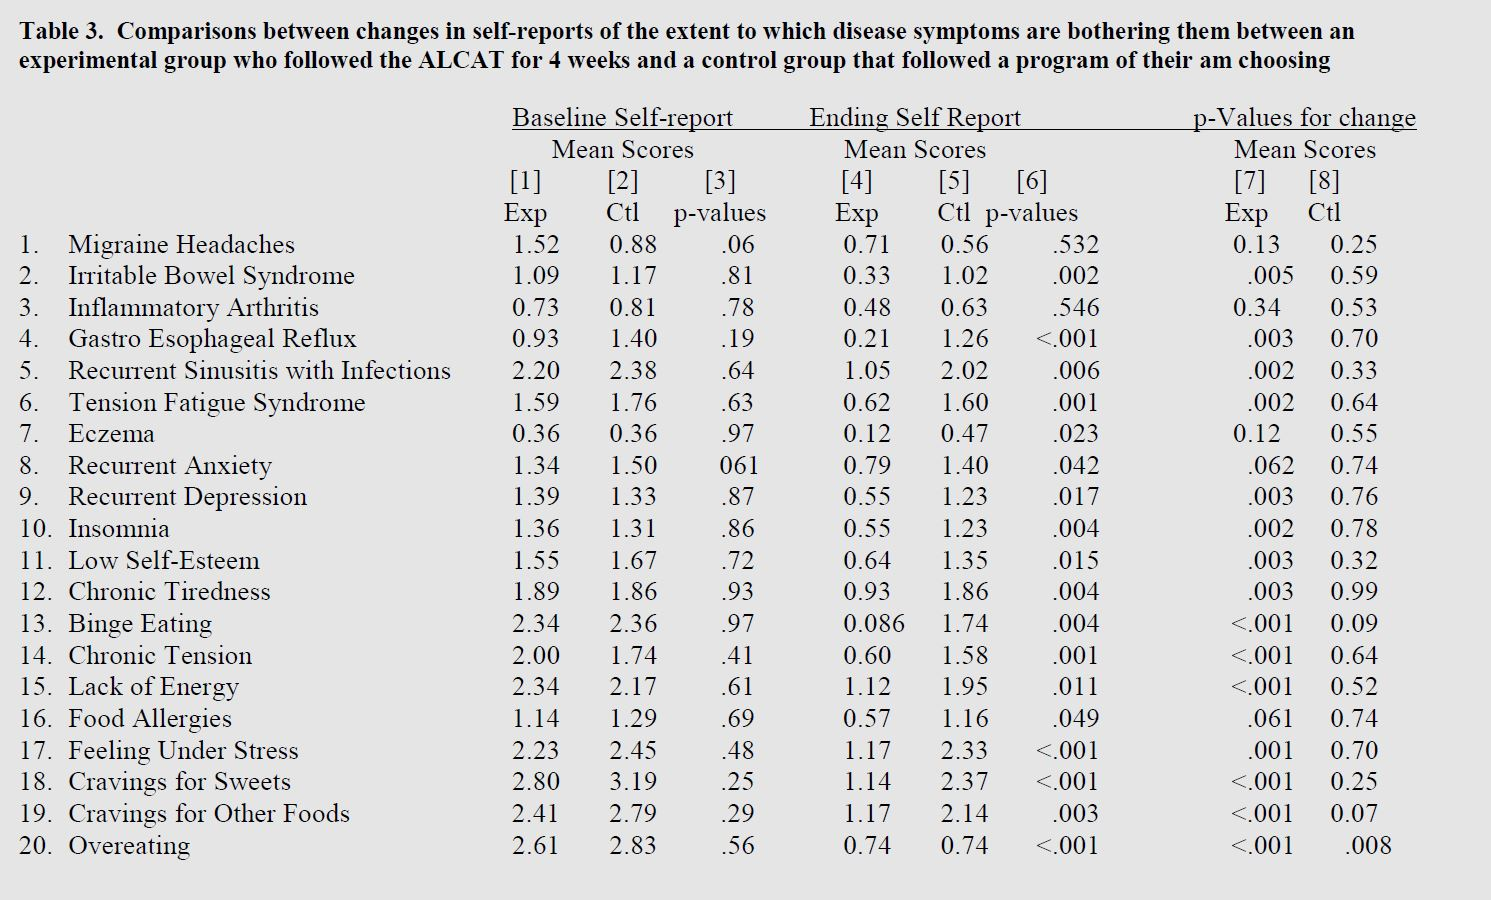 table of comparisons between changes in self-reports of the extent to which disease symptoms are bothering patients between an experimental group following the Alcat Test diet and a control group that followed another diet of choice